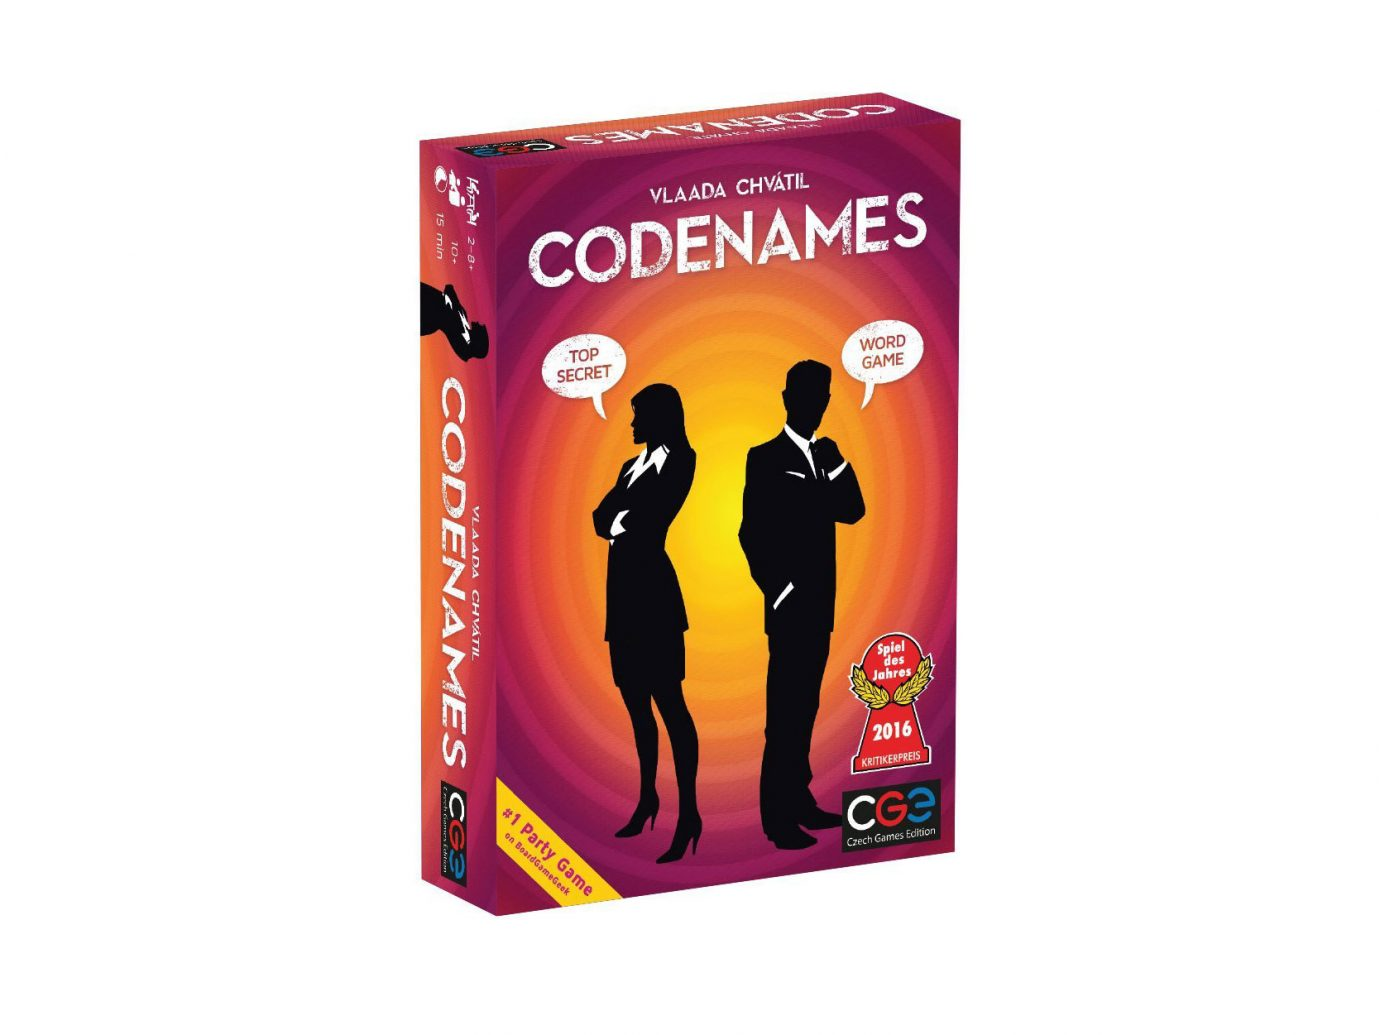 Buy Codenames Game on Amazon